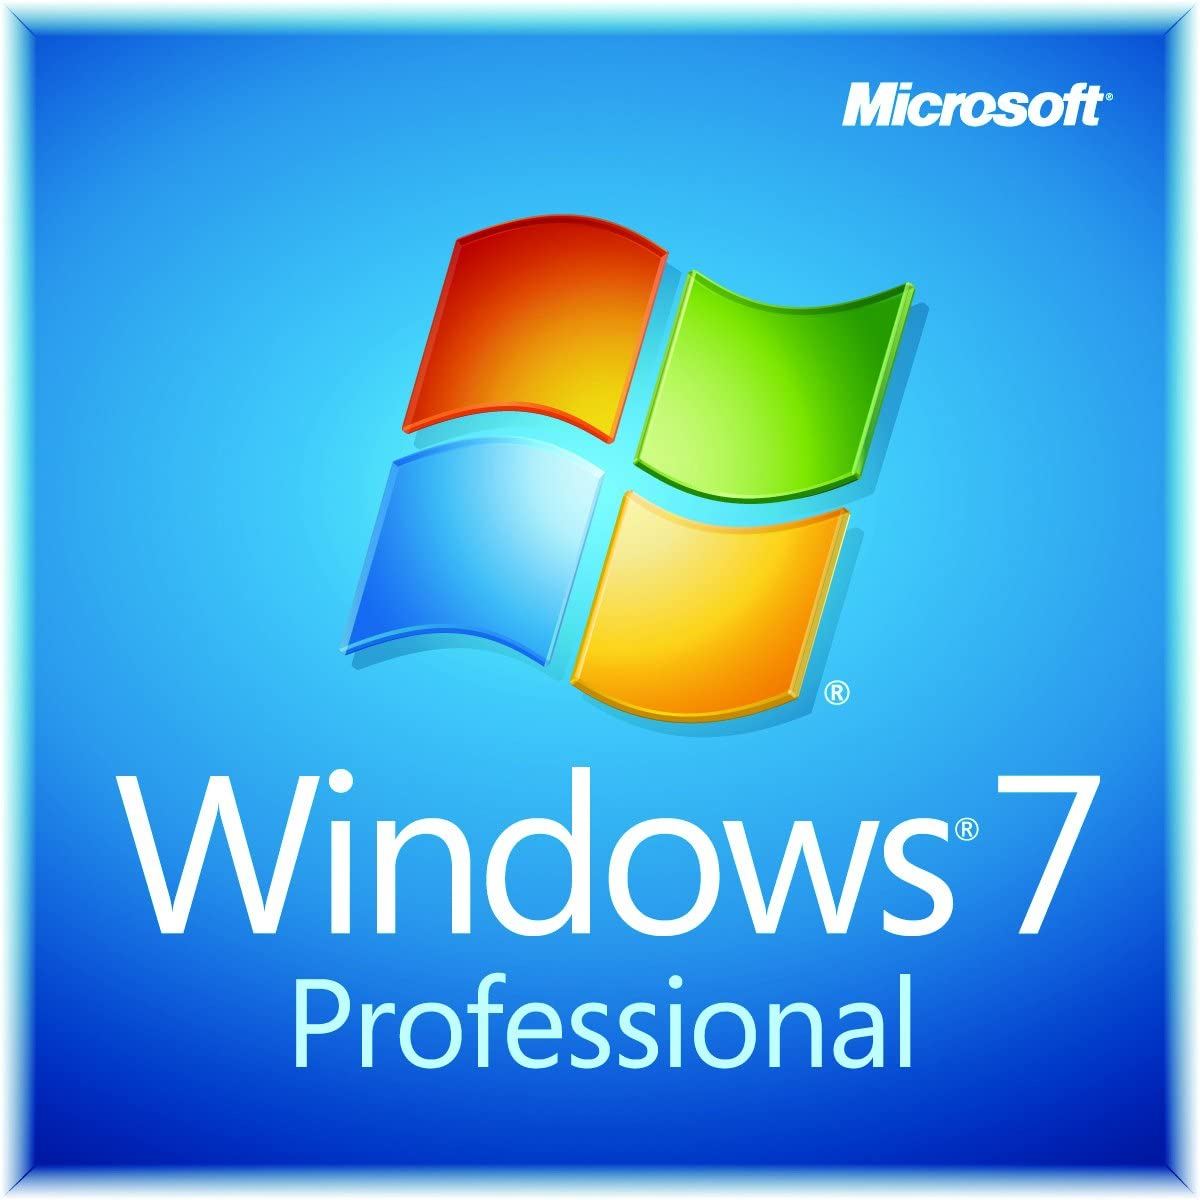 Windows 7 Professional 32-Bit (SB-Version)